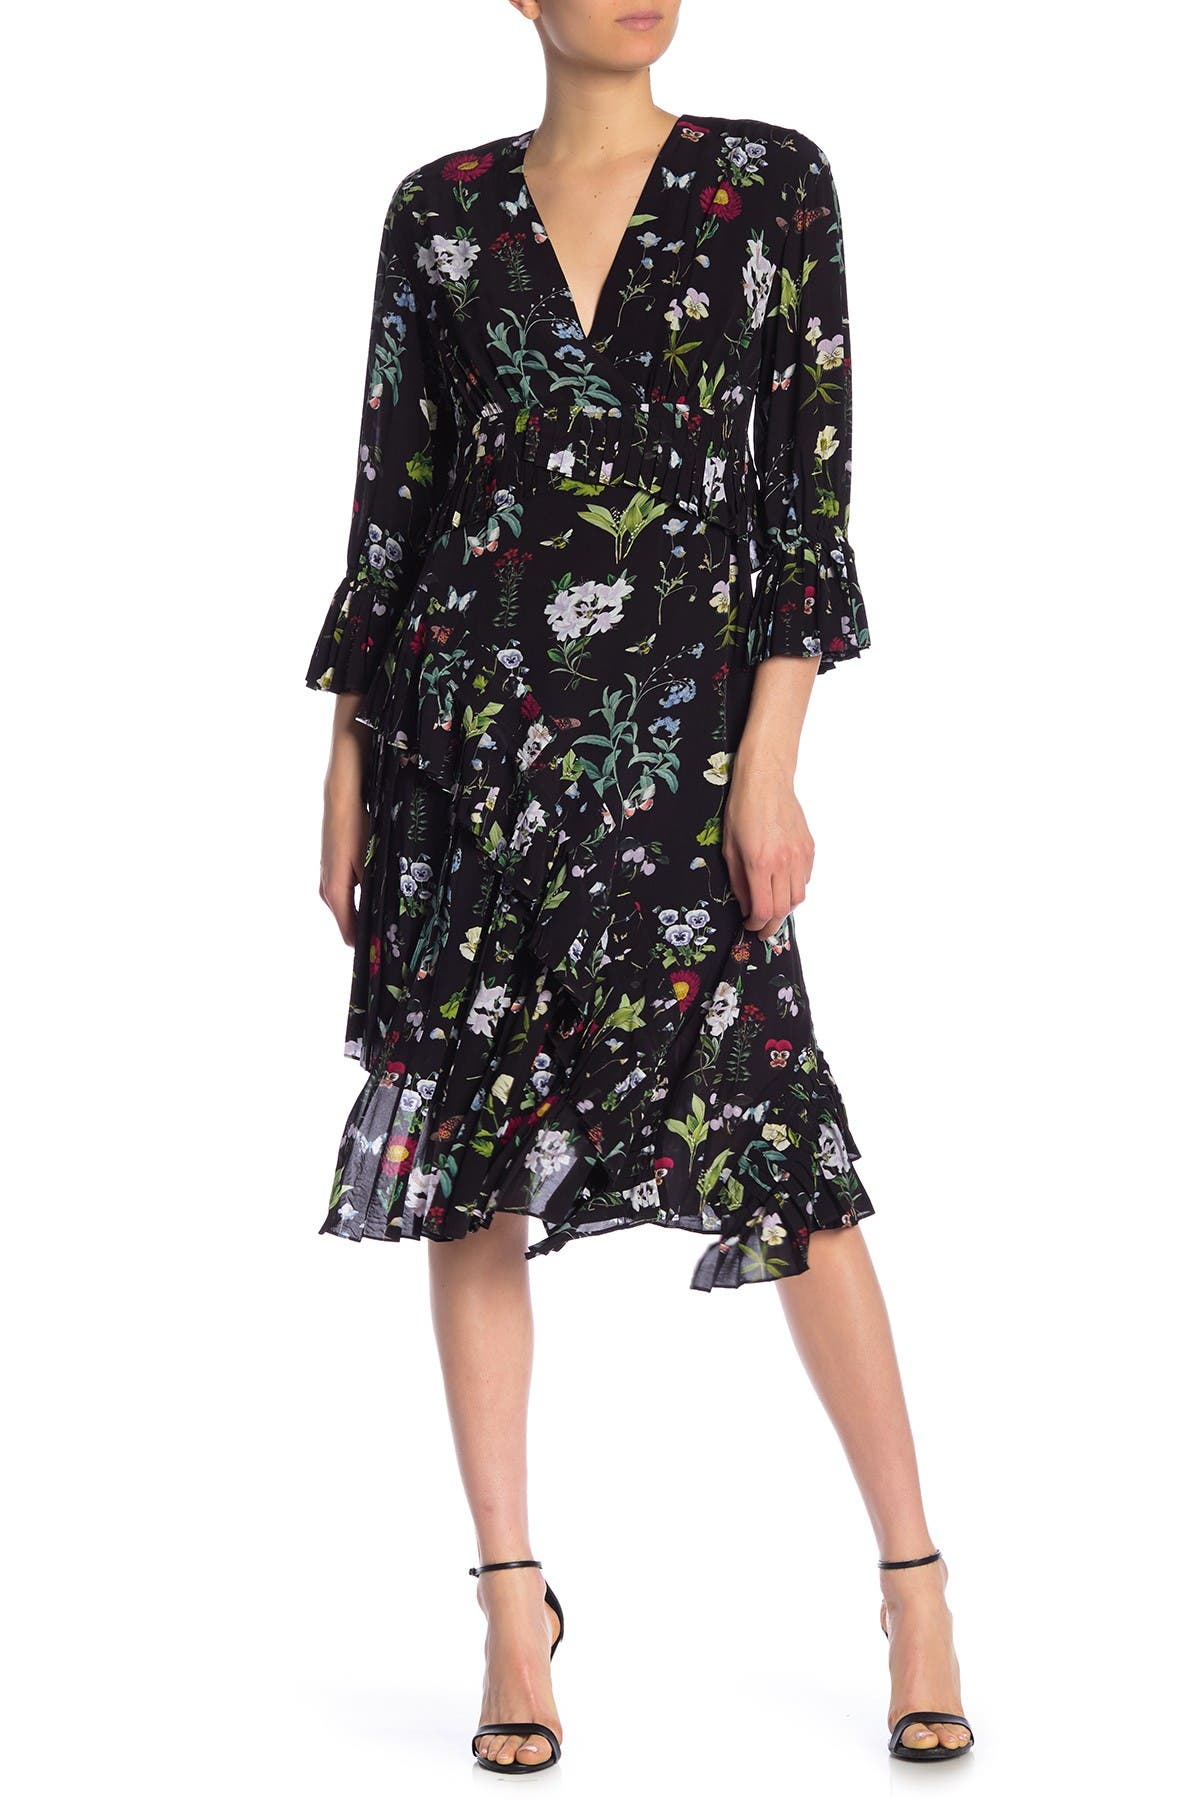 Image of Joie Analena Floral Pleated Ruffle Midi Dress